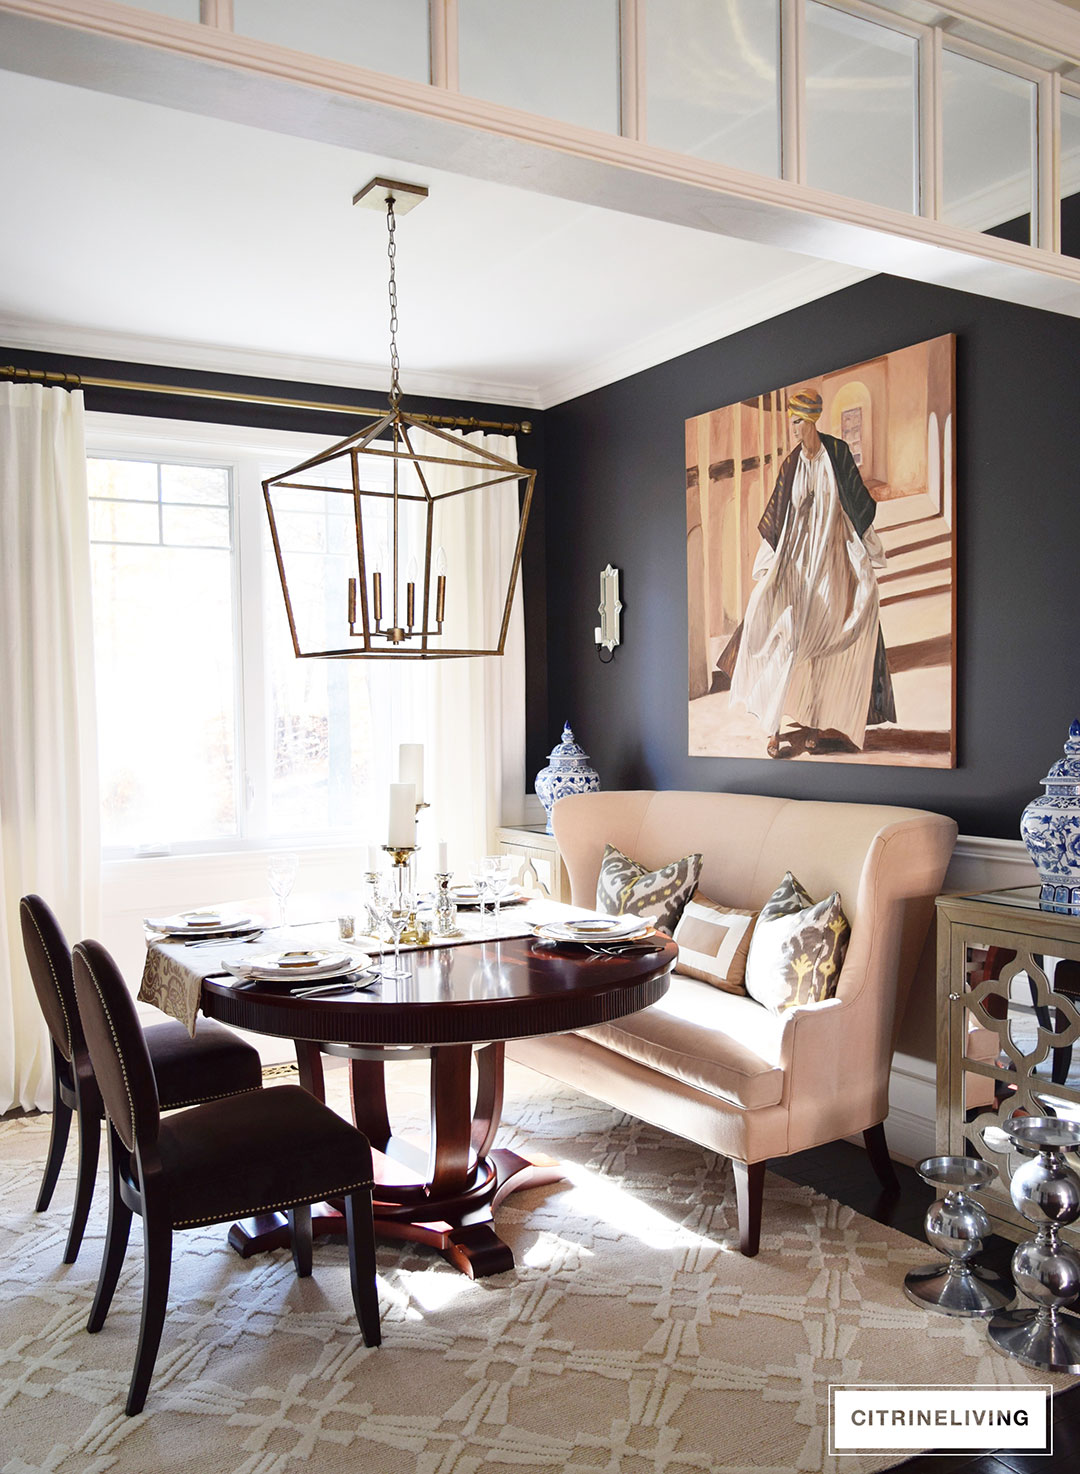 Citrineliving neutral dining room updates for Black dining room walls